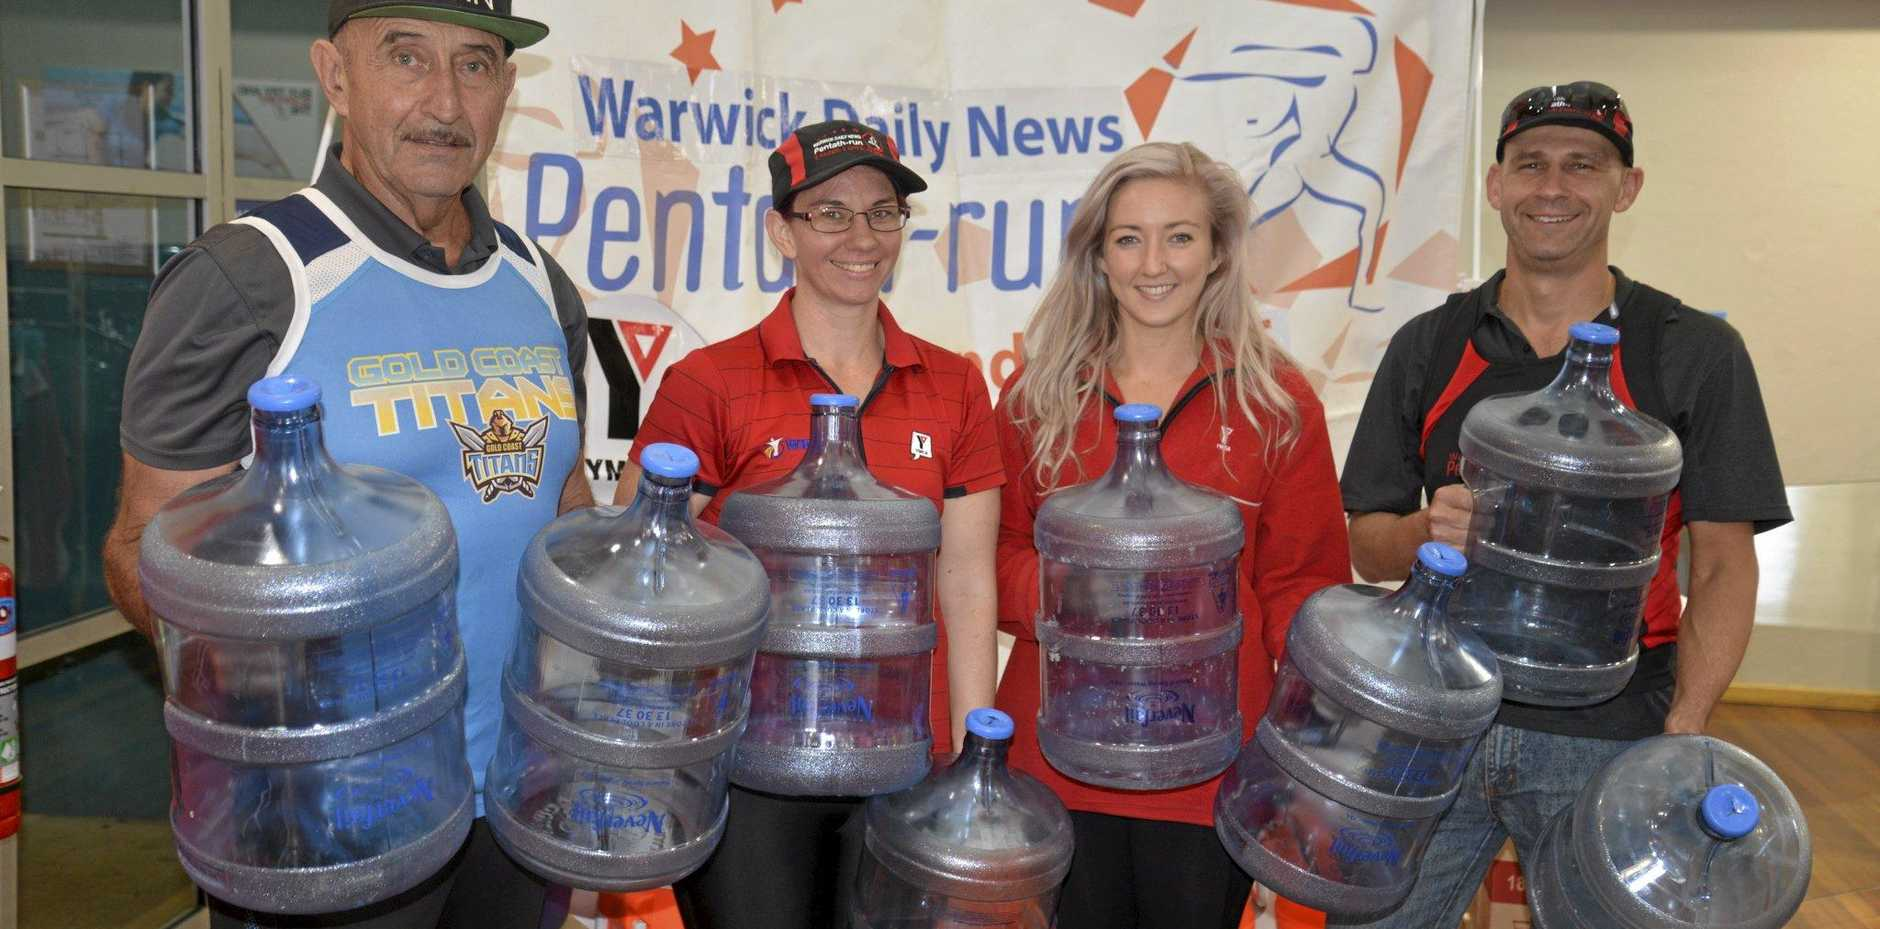 Daily News Pentath-run logistics co-ordinator Jonno Felton, WIRAC/YMCA staff Carla Thornton and Cassie Taylor and Pentath-run event director Neil Burtenshaw will be stocking up on water for a hot weekend of racing.